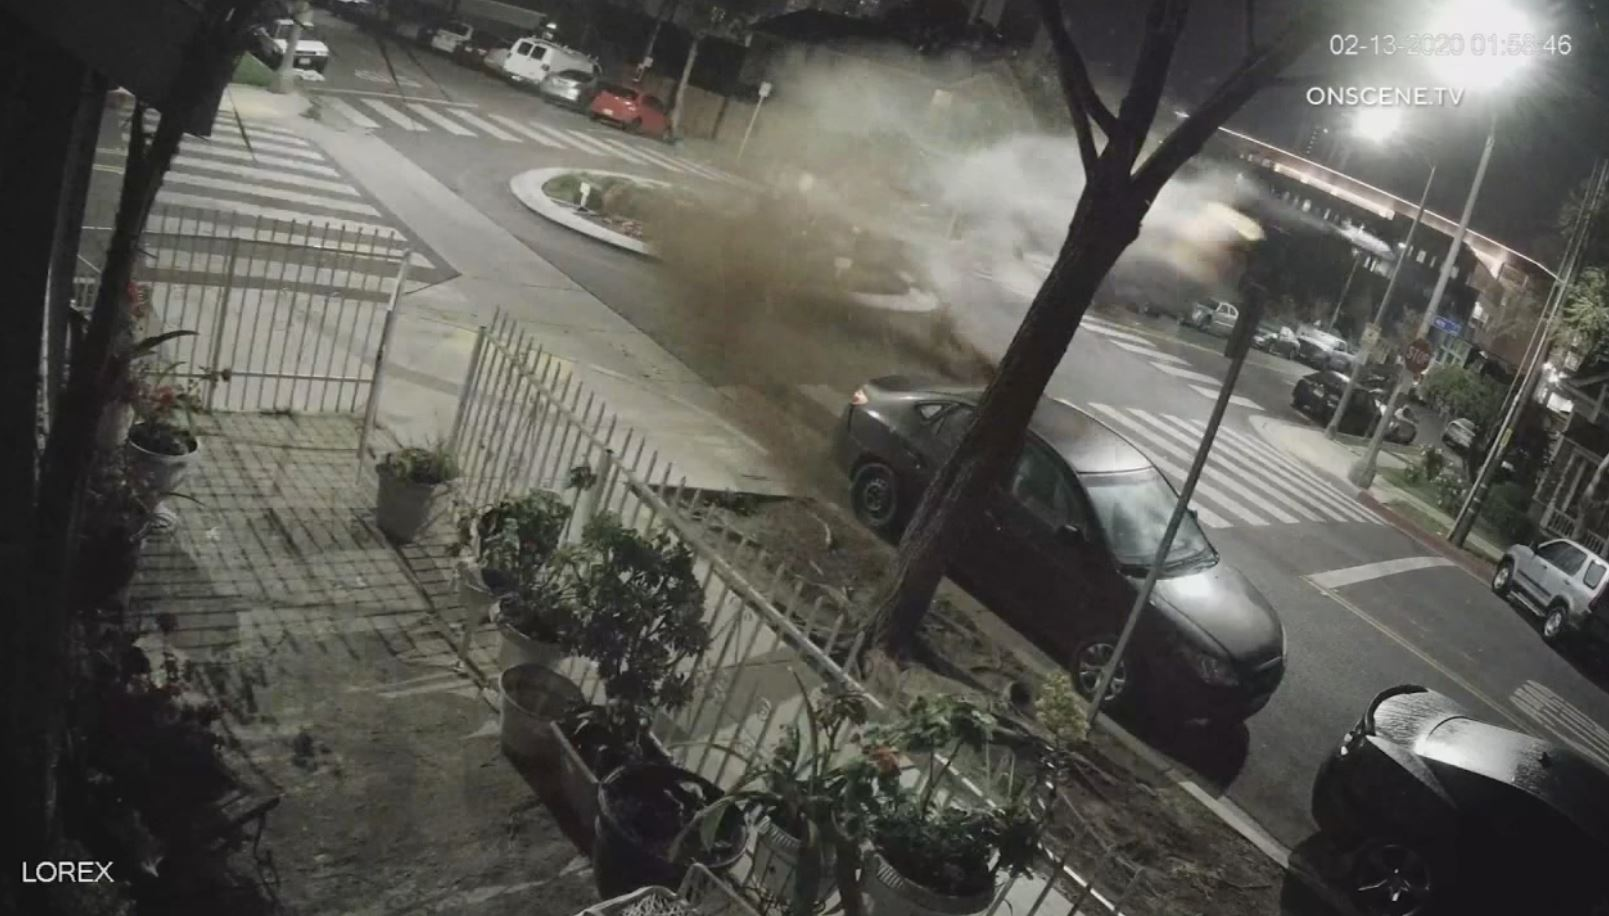 Airborne BMW Soars Over Intersection After Striking a Boulder at High Speed